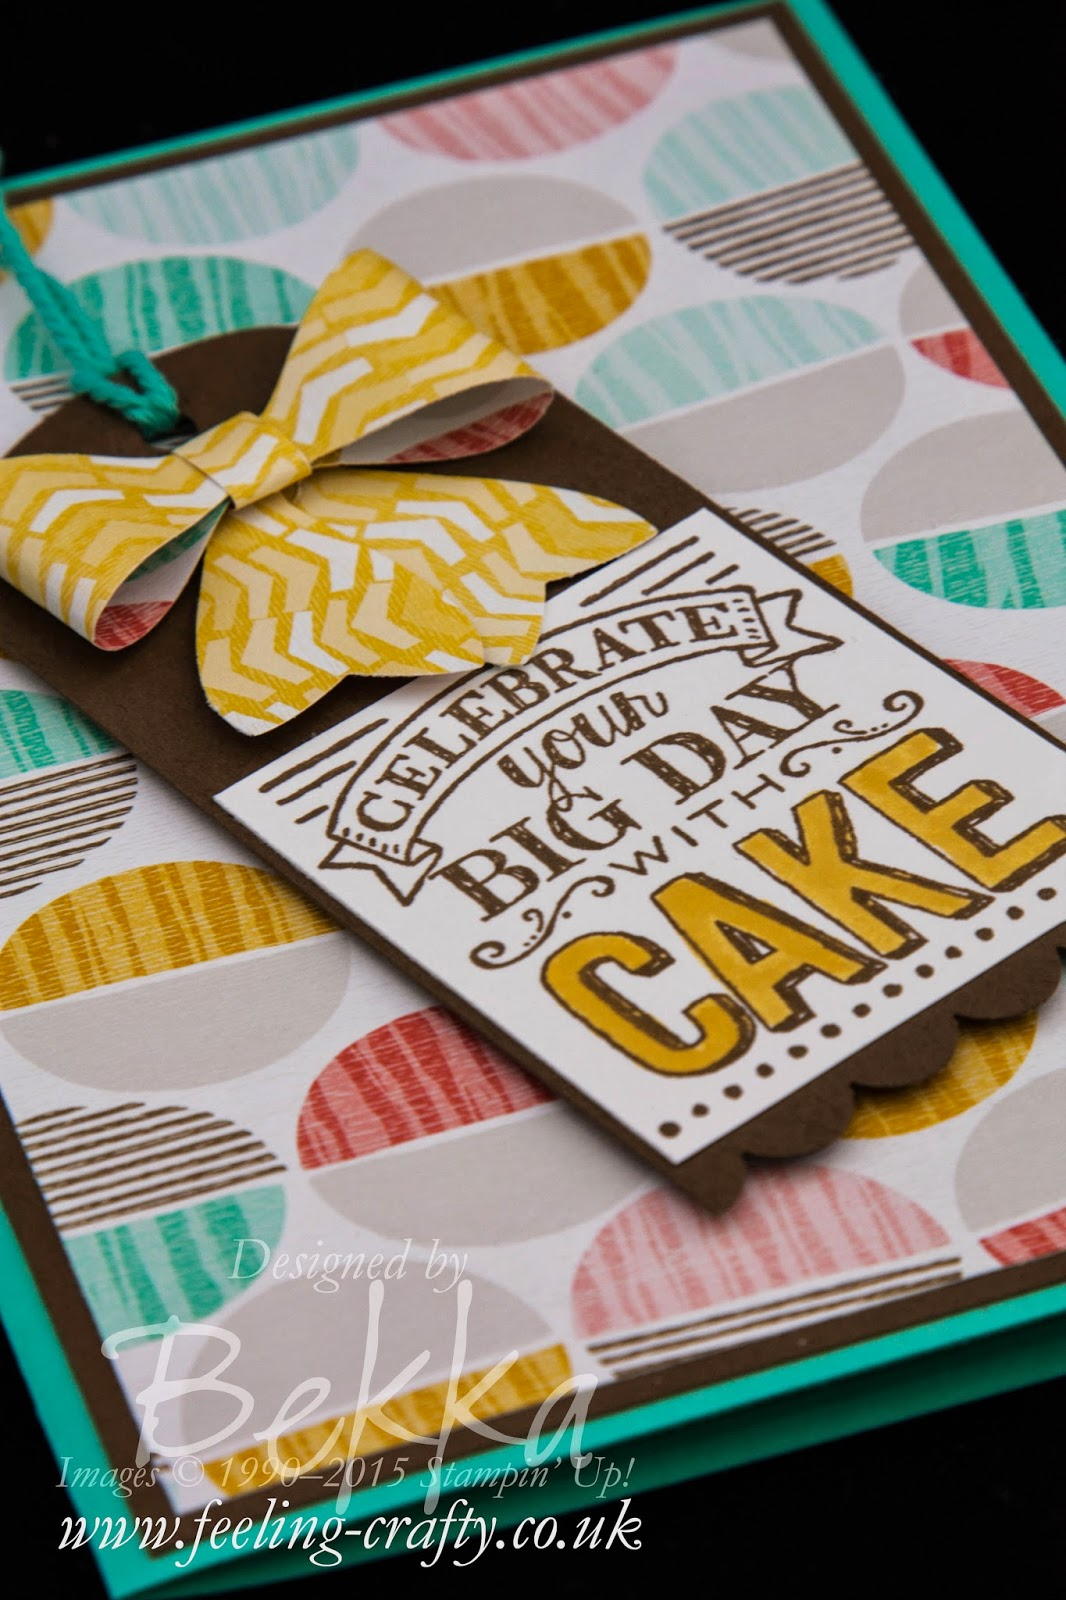 Celebrate Your Birthday Card - check this blog for lots of cute ideas